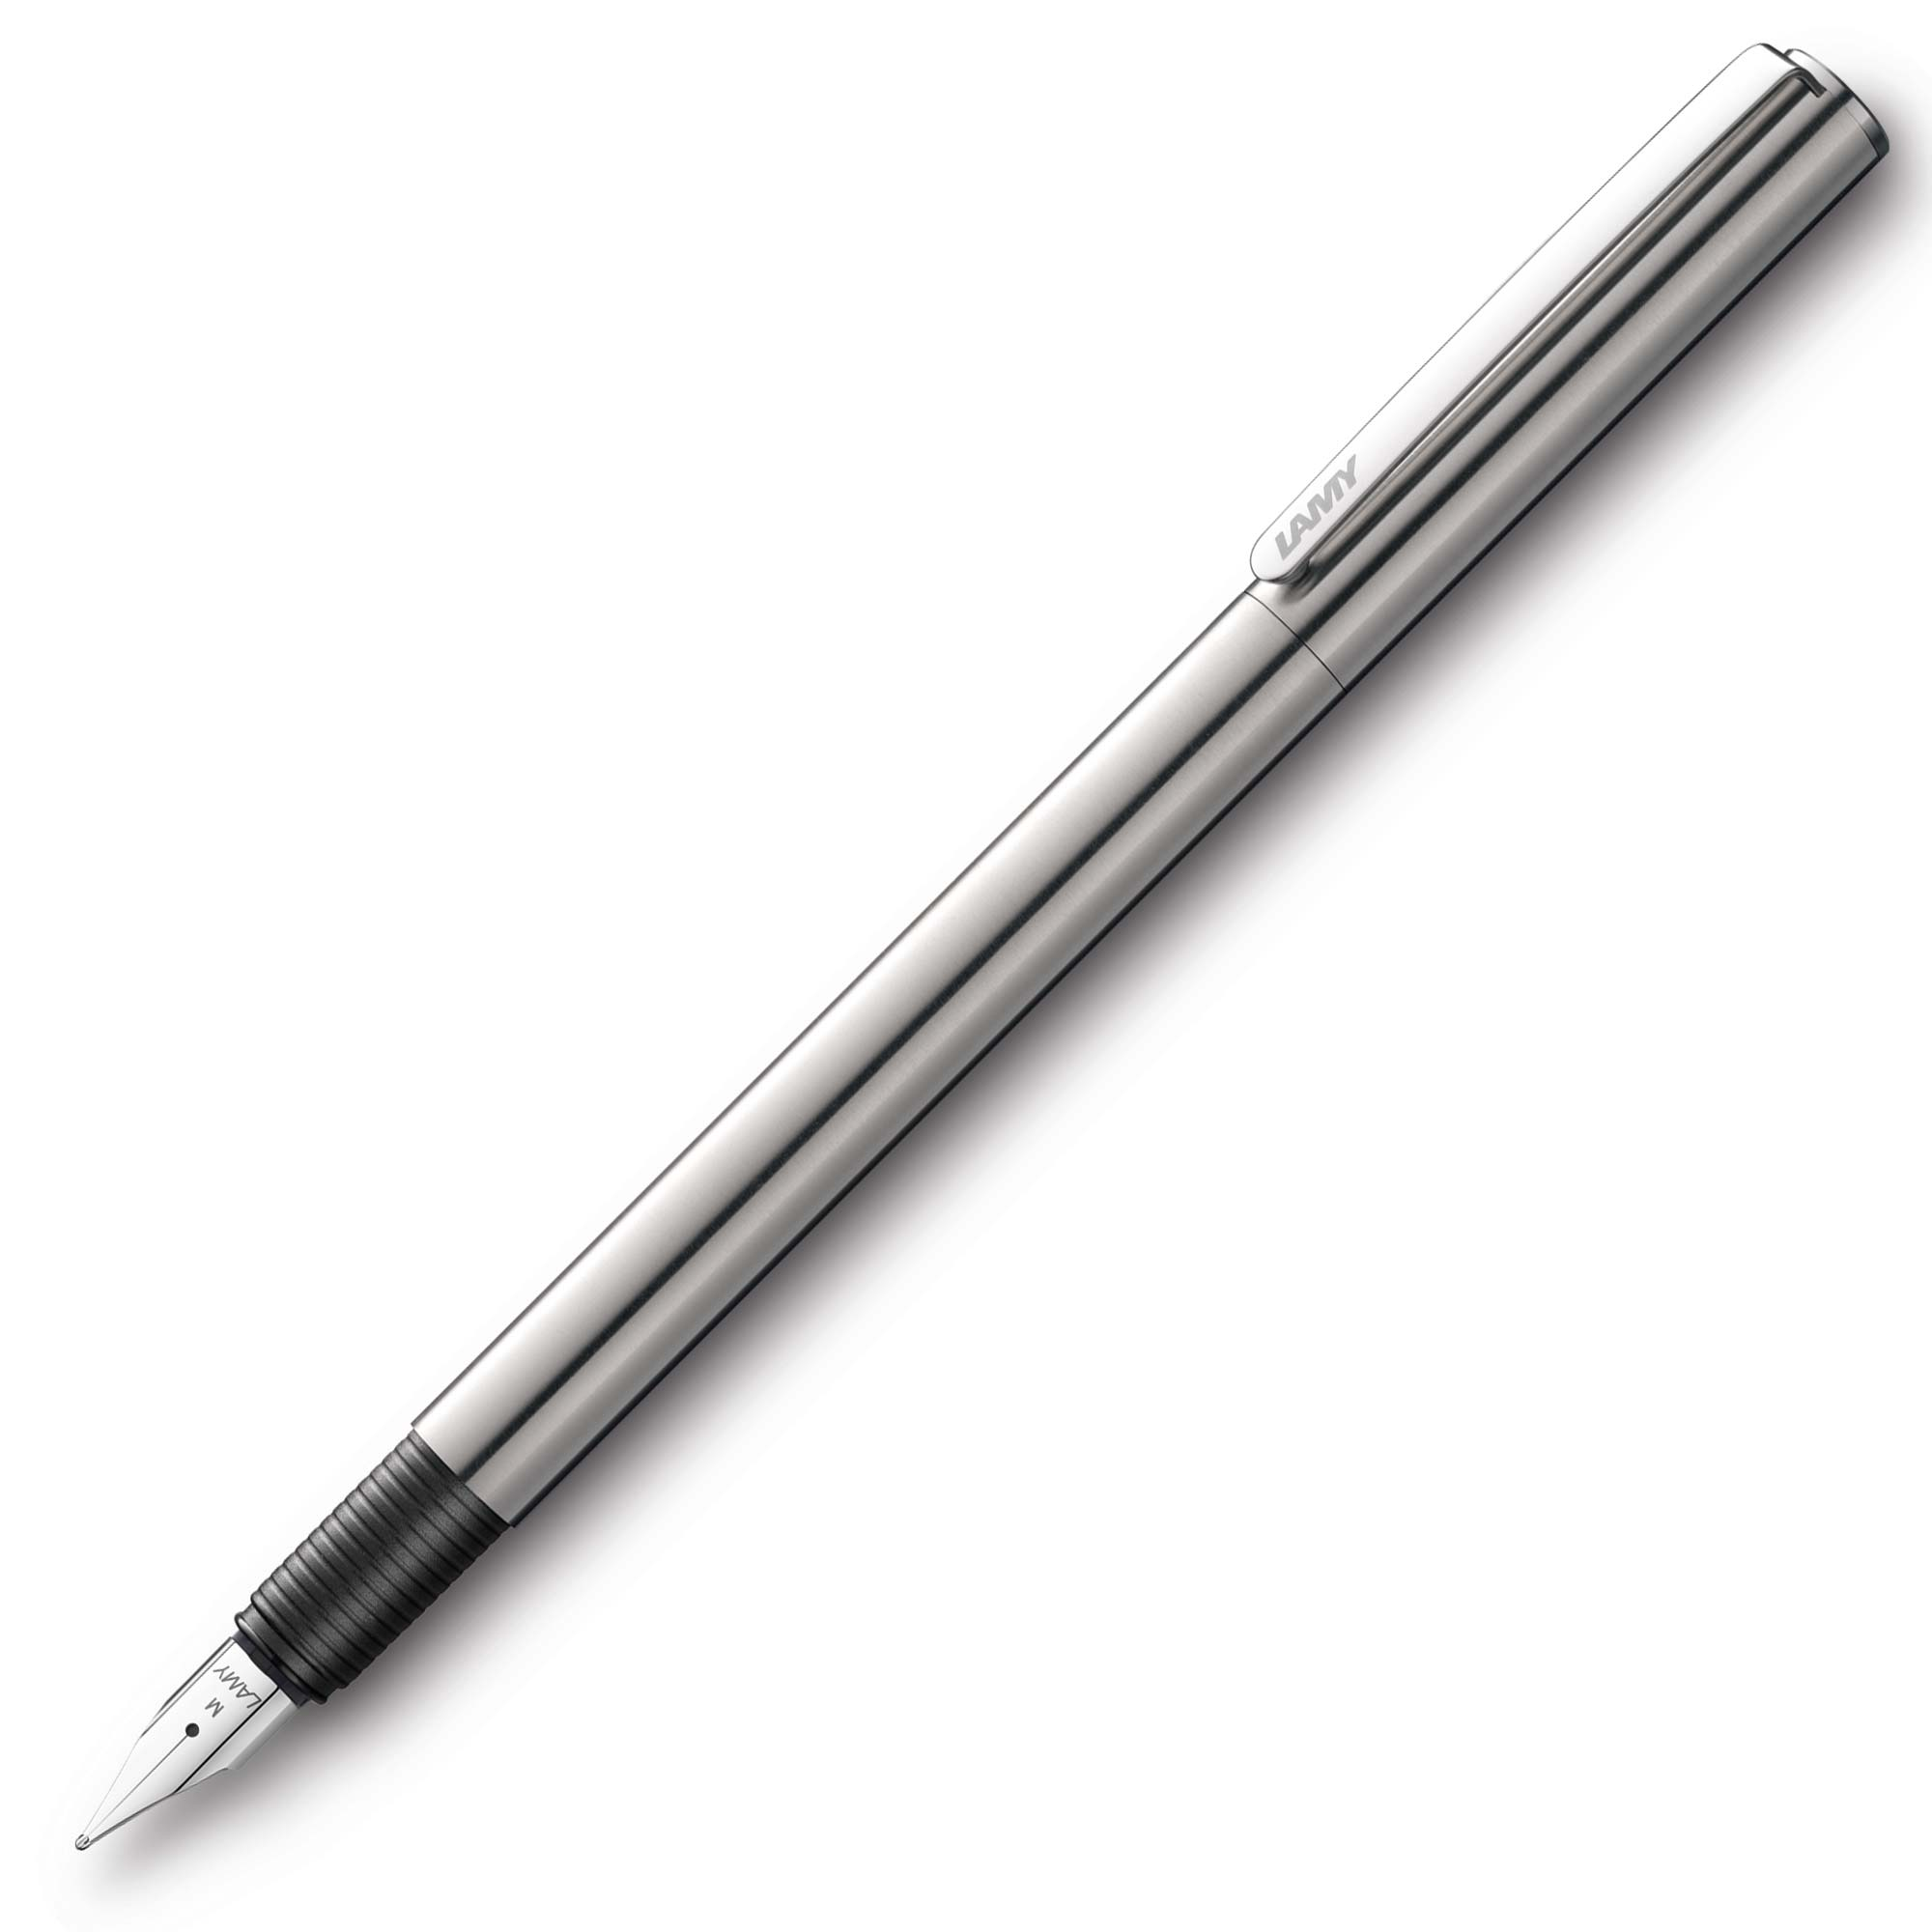 lamy-st-fountain-pen-4281-nibsmith